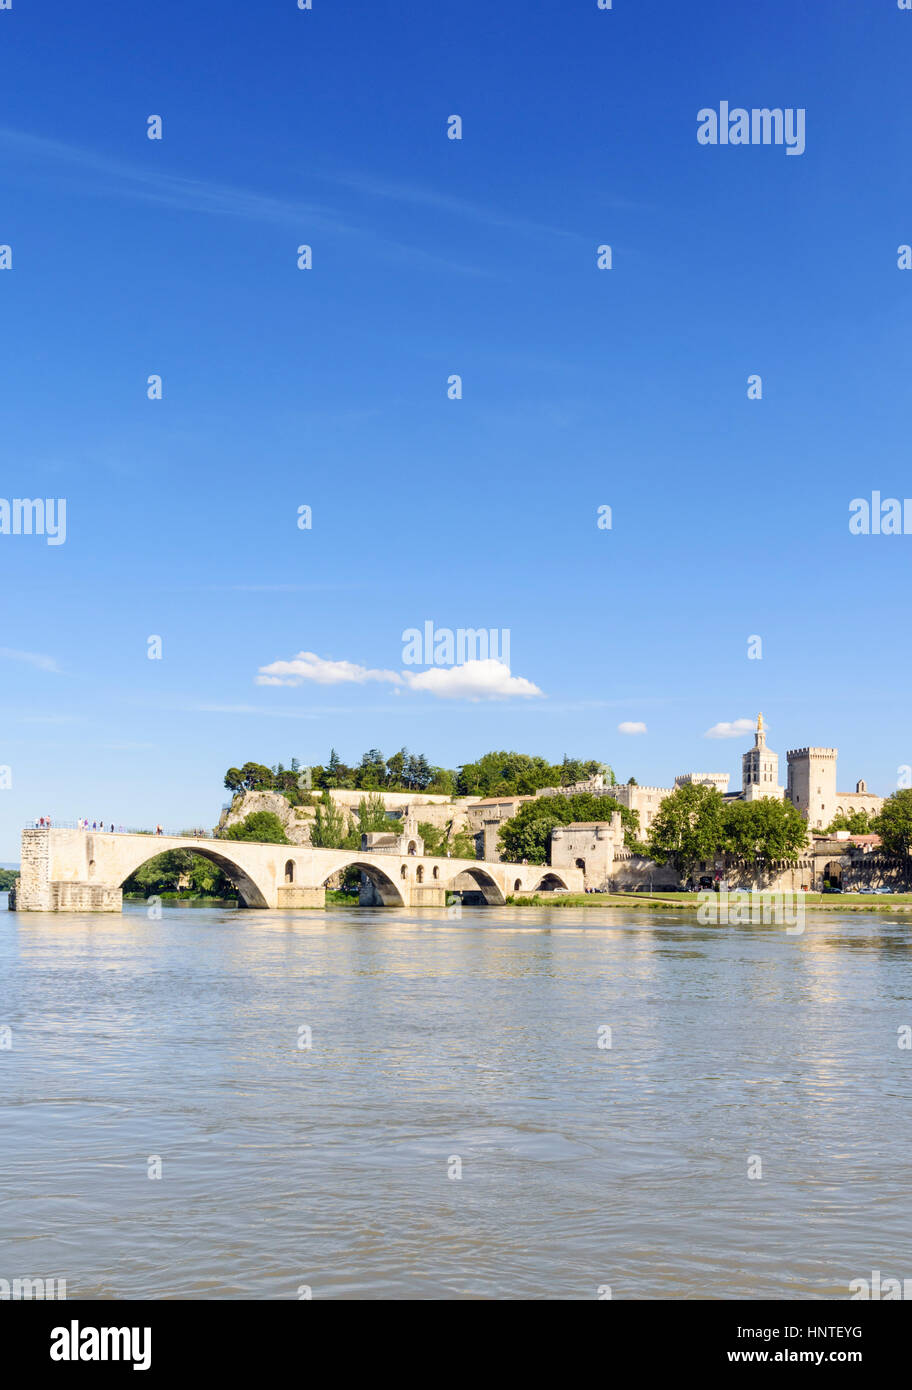 Pont Saint-Bénézet bridge, Avignon, France - Stock Image